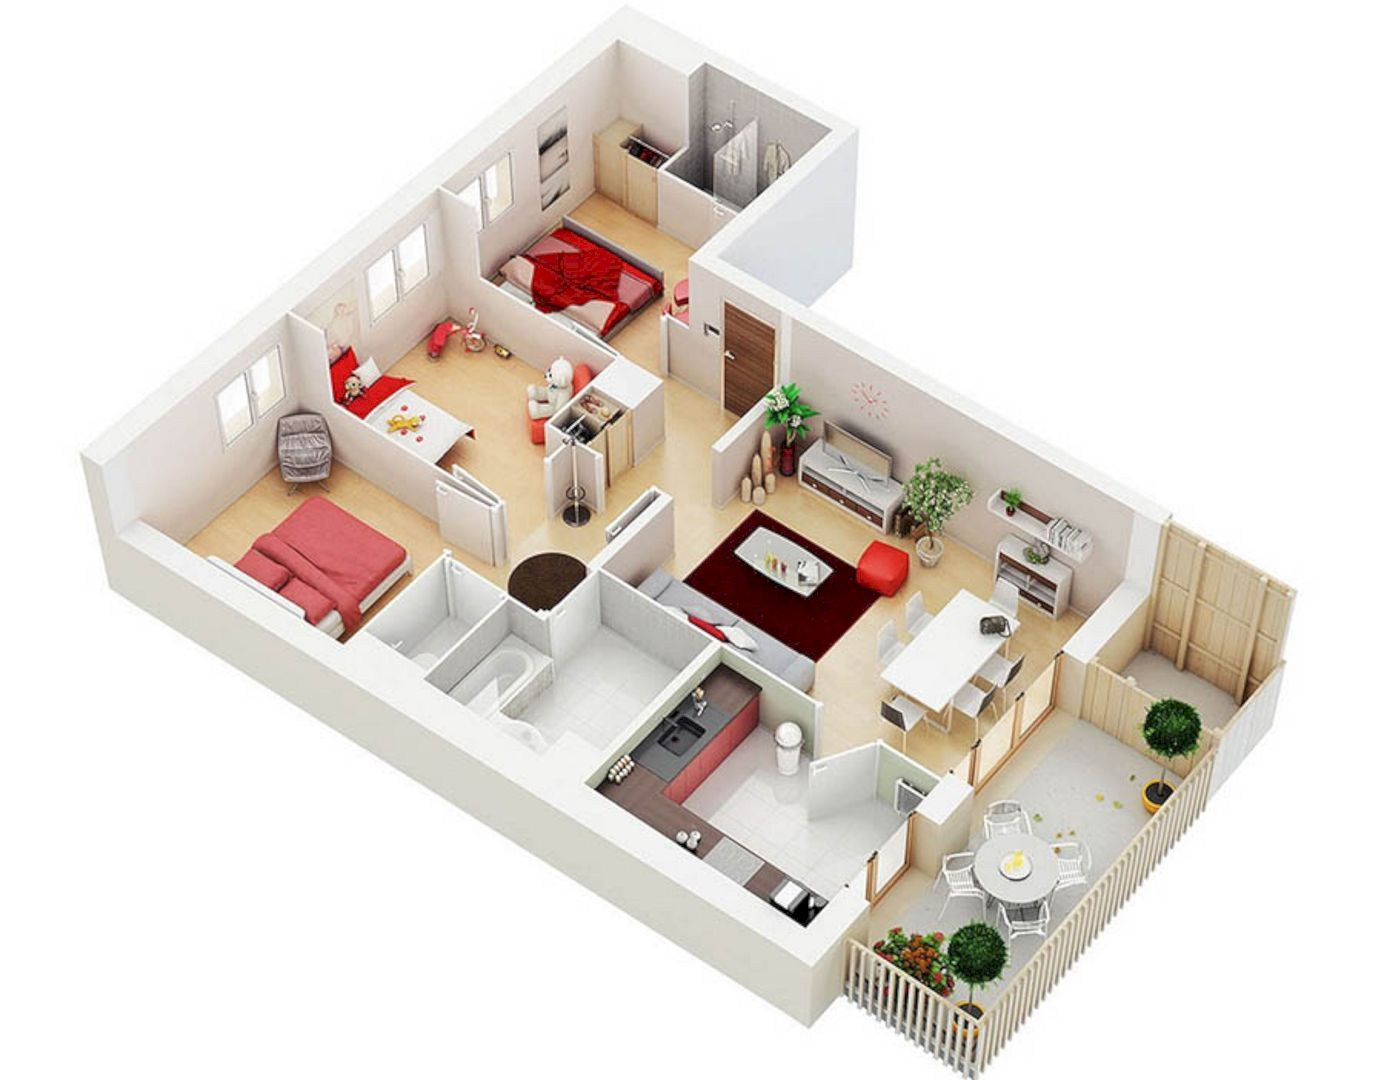 Why Do We Need 3d House Plan Before Starting The Project Home Design Plans Apartment Floor Plans House Floor Plans